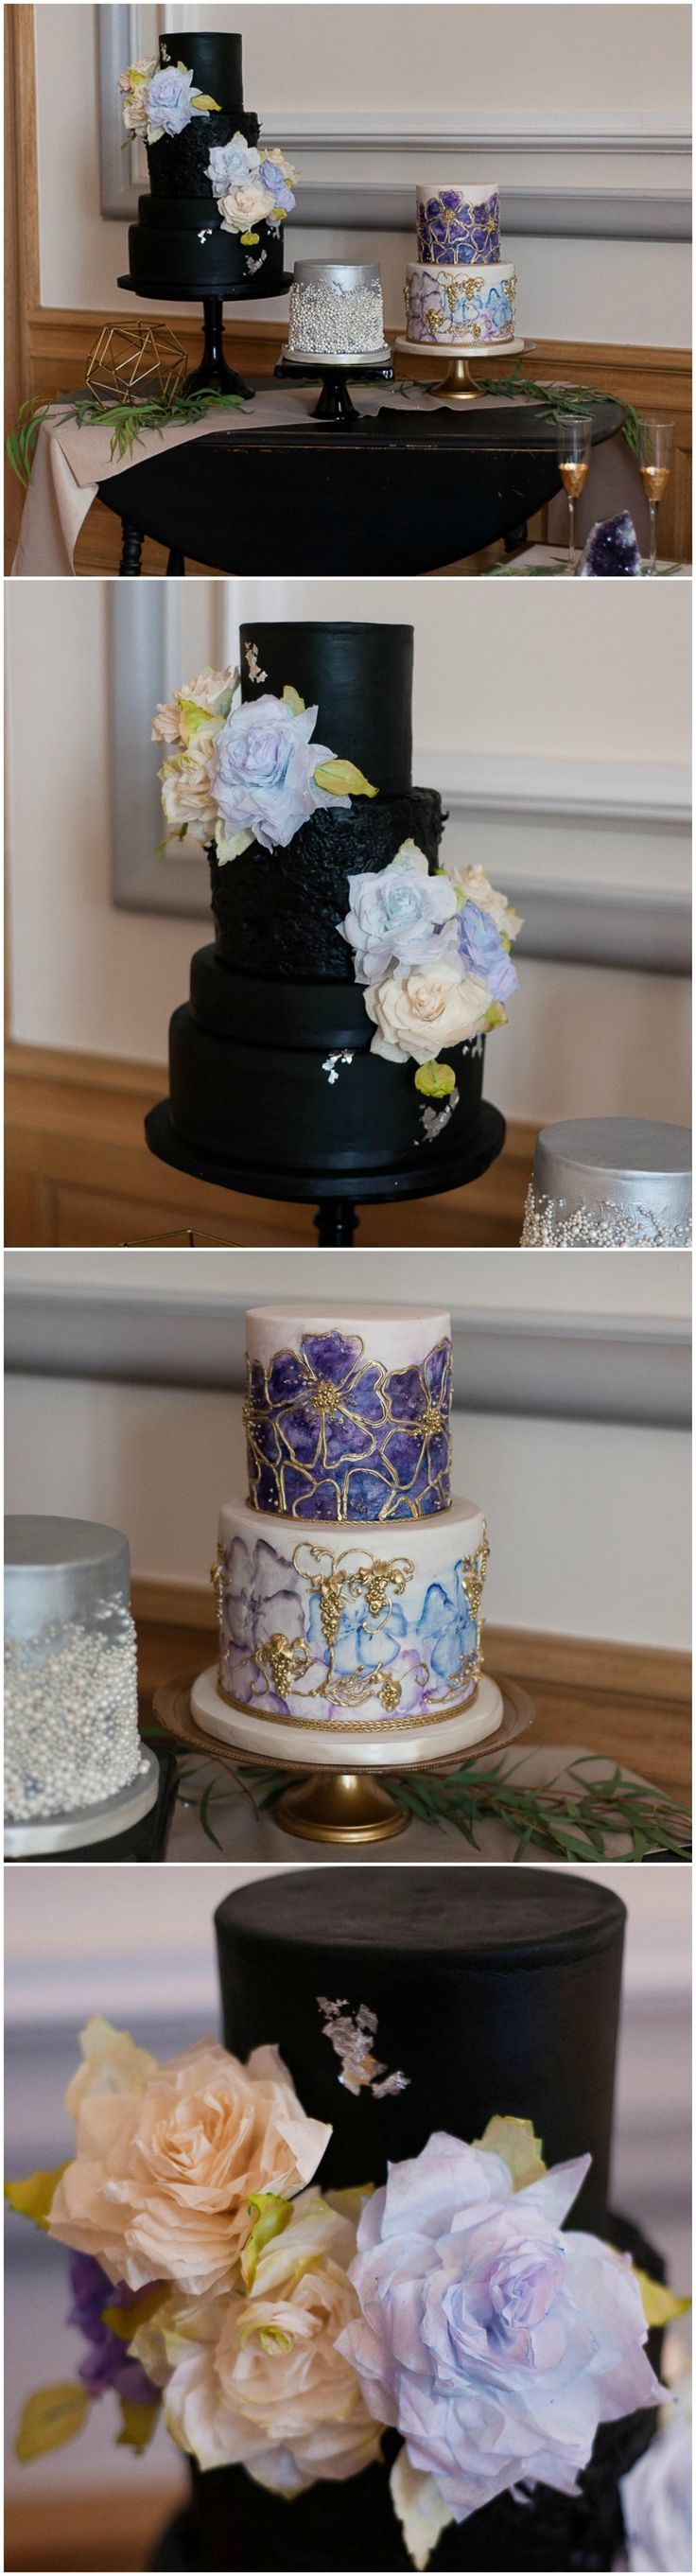 best 25 black wedding cakes ideas on pinterest black and gold cake black wedding cake icing. Black Bedroom Furniture Sets. Home Design Ideas